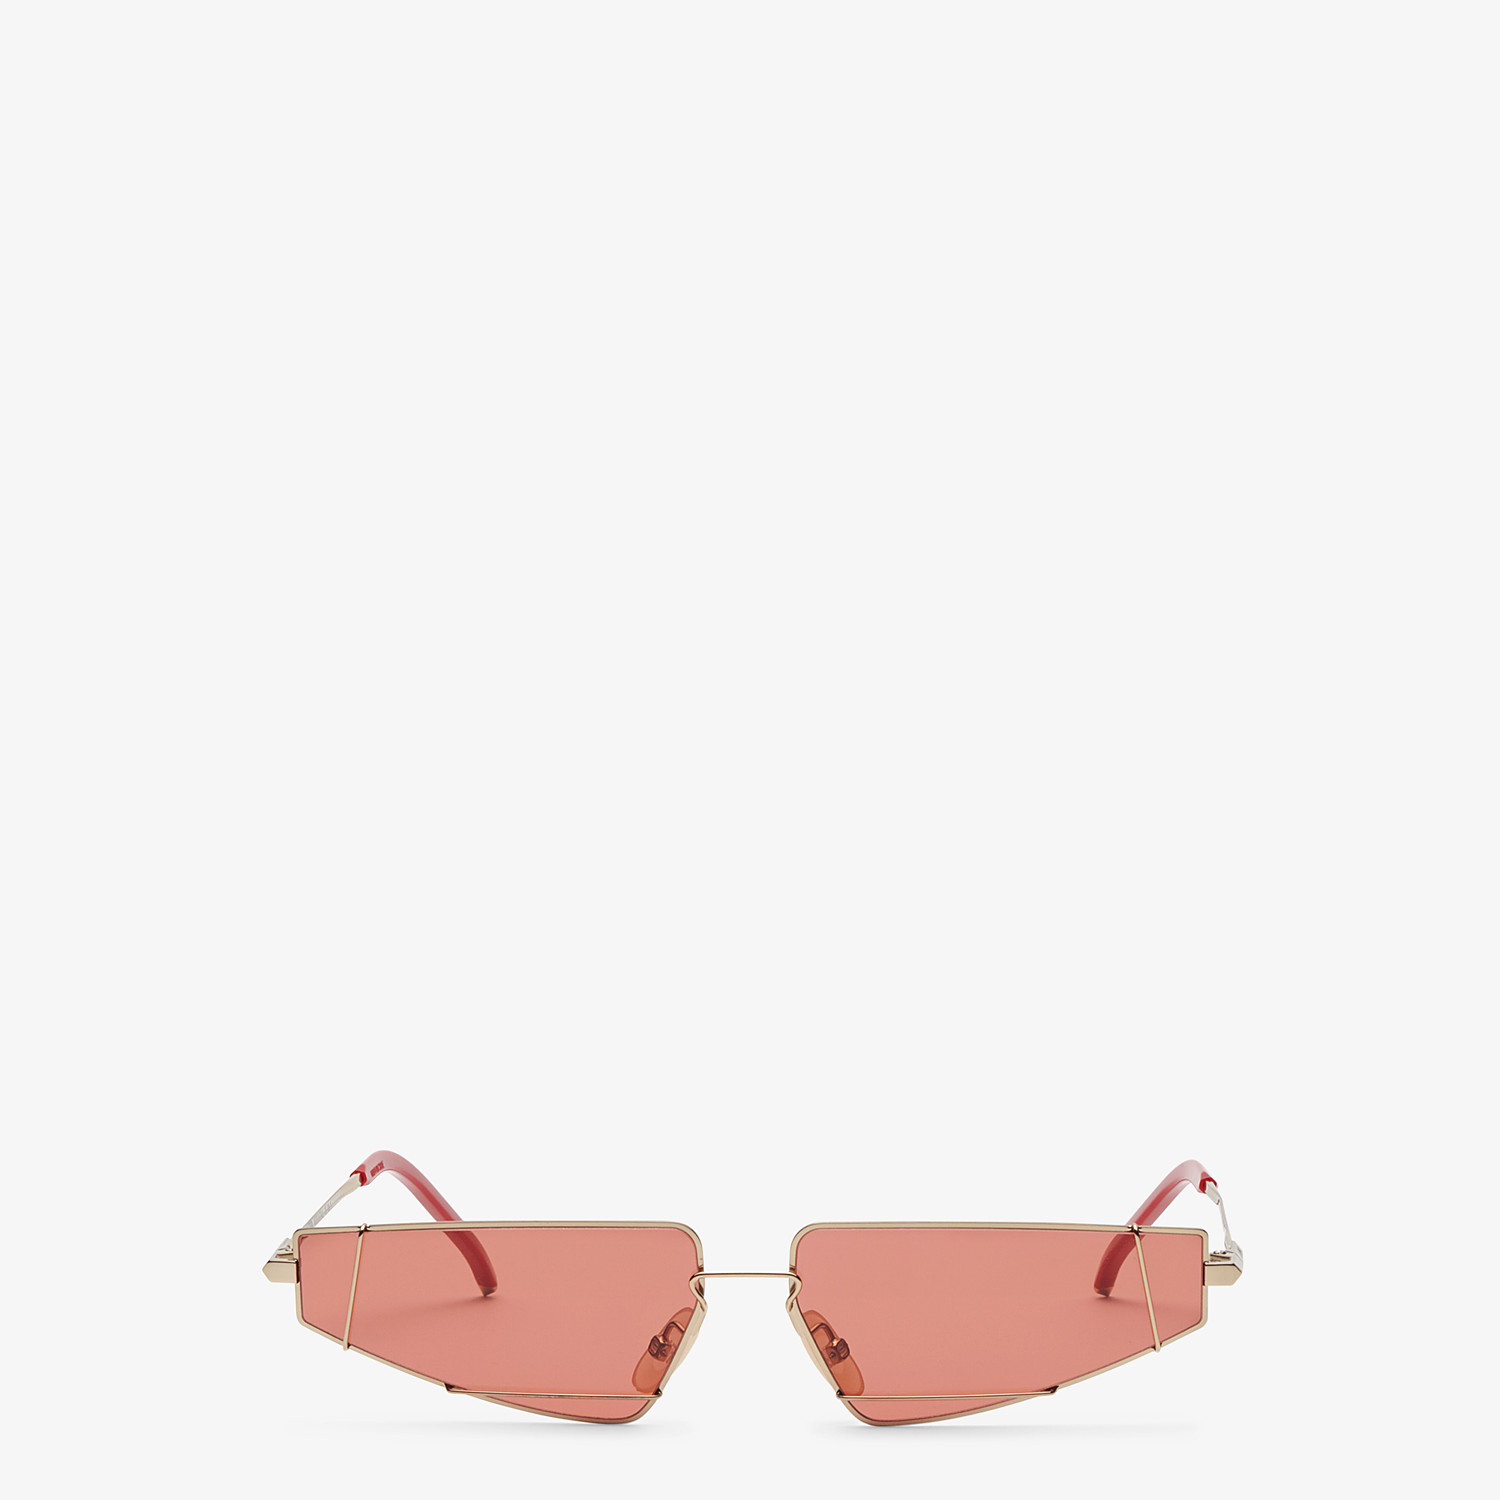 FENDI FENDIFIEND - Gold and red sunglasses - view 1 detail